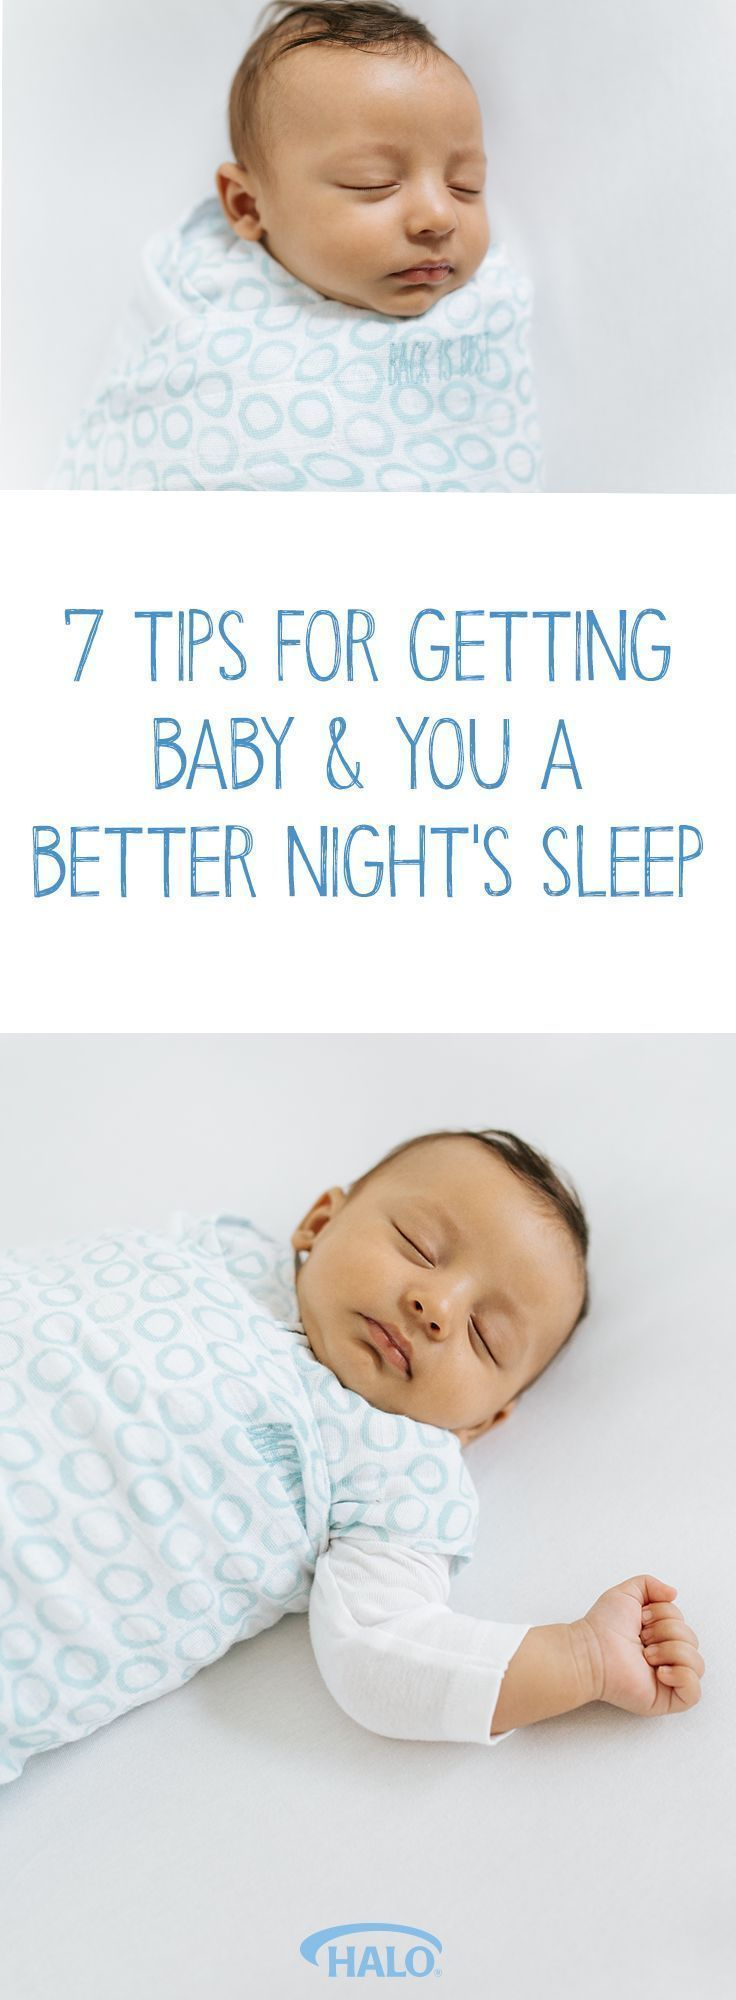 Tips for getting baby and you a better nights sleep. Tips for sleep with a newborn. Newborn sleep tips. Baby sleeping tips. Bedside sleeper. co-sleeper. Baby must have. Baby registry item. Bassinest. Halo bassinet. Baby gear. Safe sleep. Safe baby products. Crib. Bassinet. Wearable blanket. Swaddle. HALO SleepSack swaddle. #babyBlanketSleeper #babywearableblanket #babywearableblankets